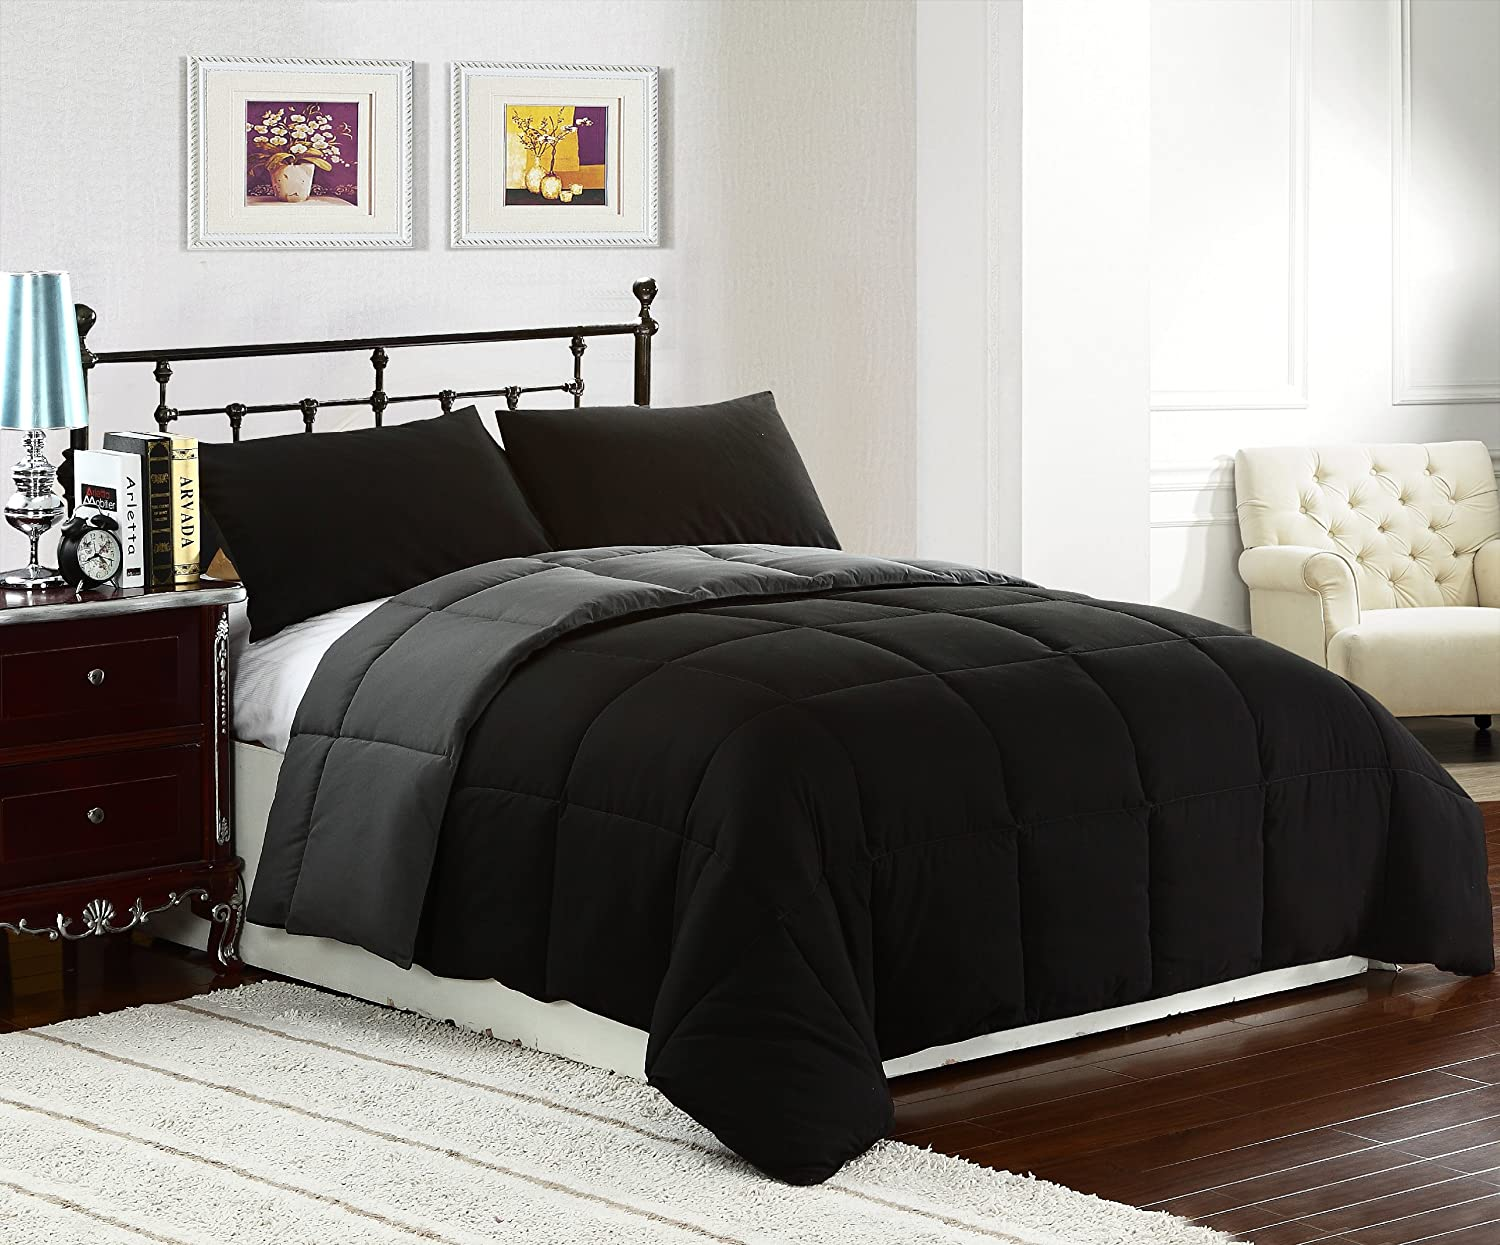 Reversible comforter sets ease bedding with style for Mens bedroom furniture sets